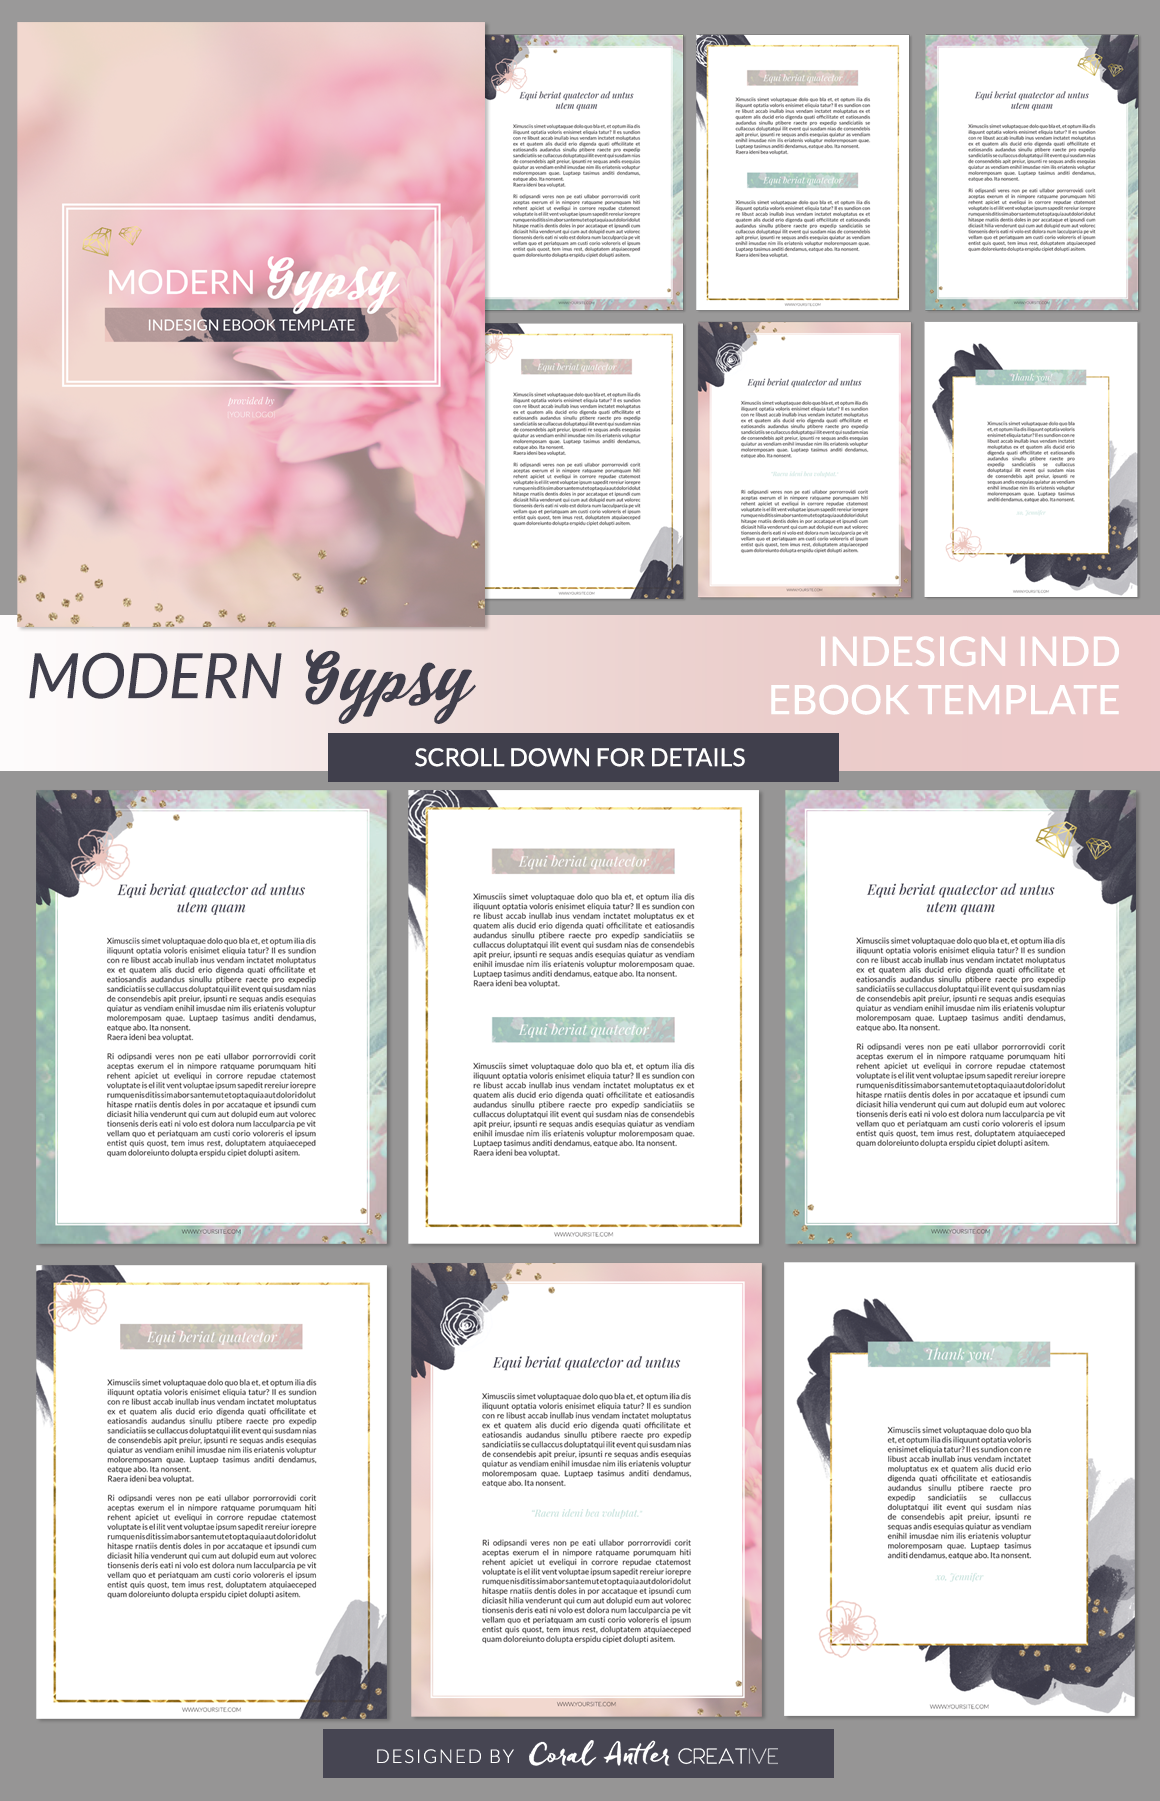 Modern Gypsy InDesign Ebook Template